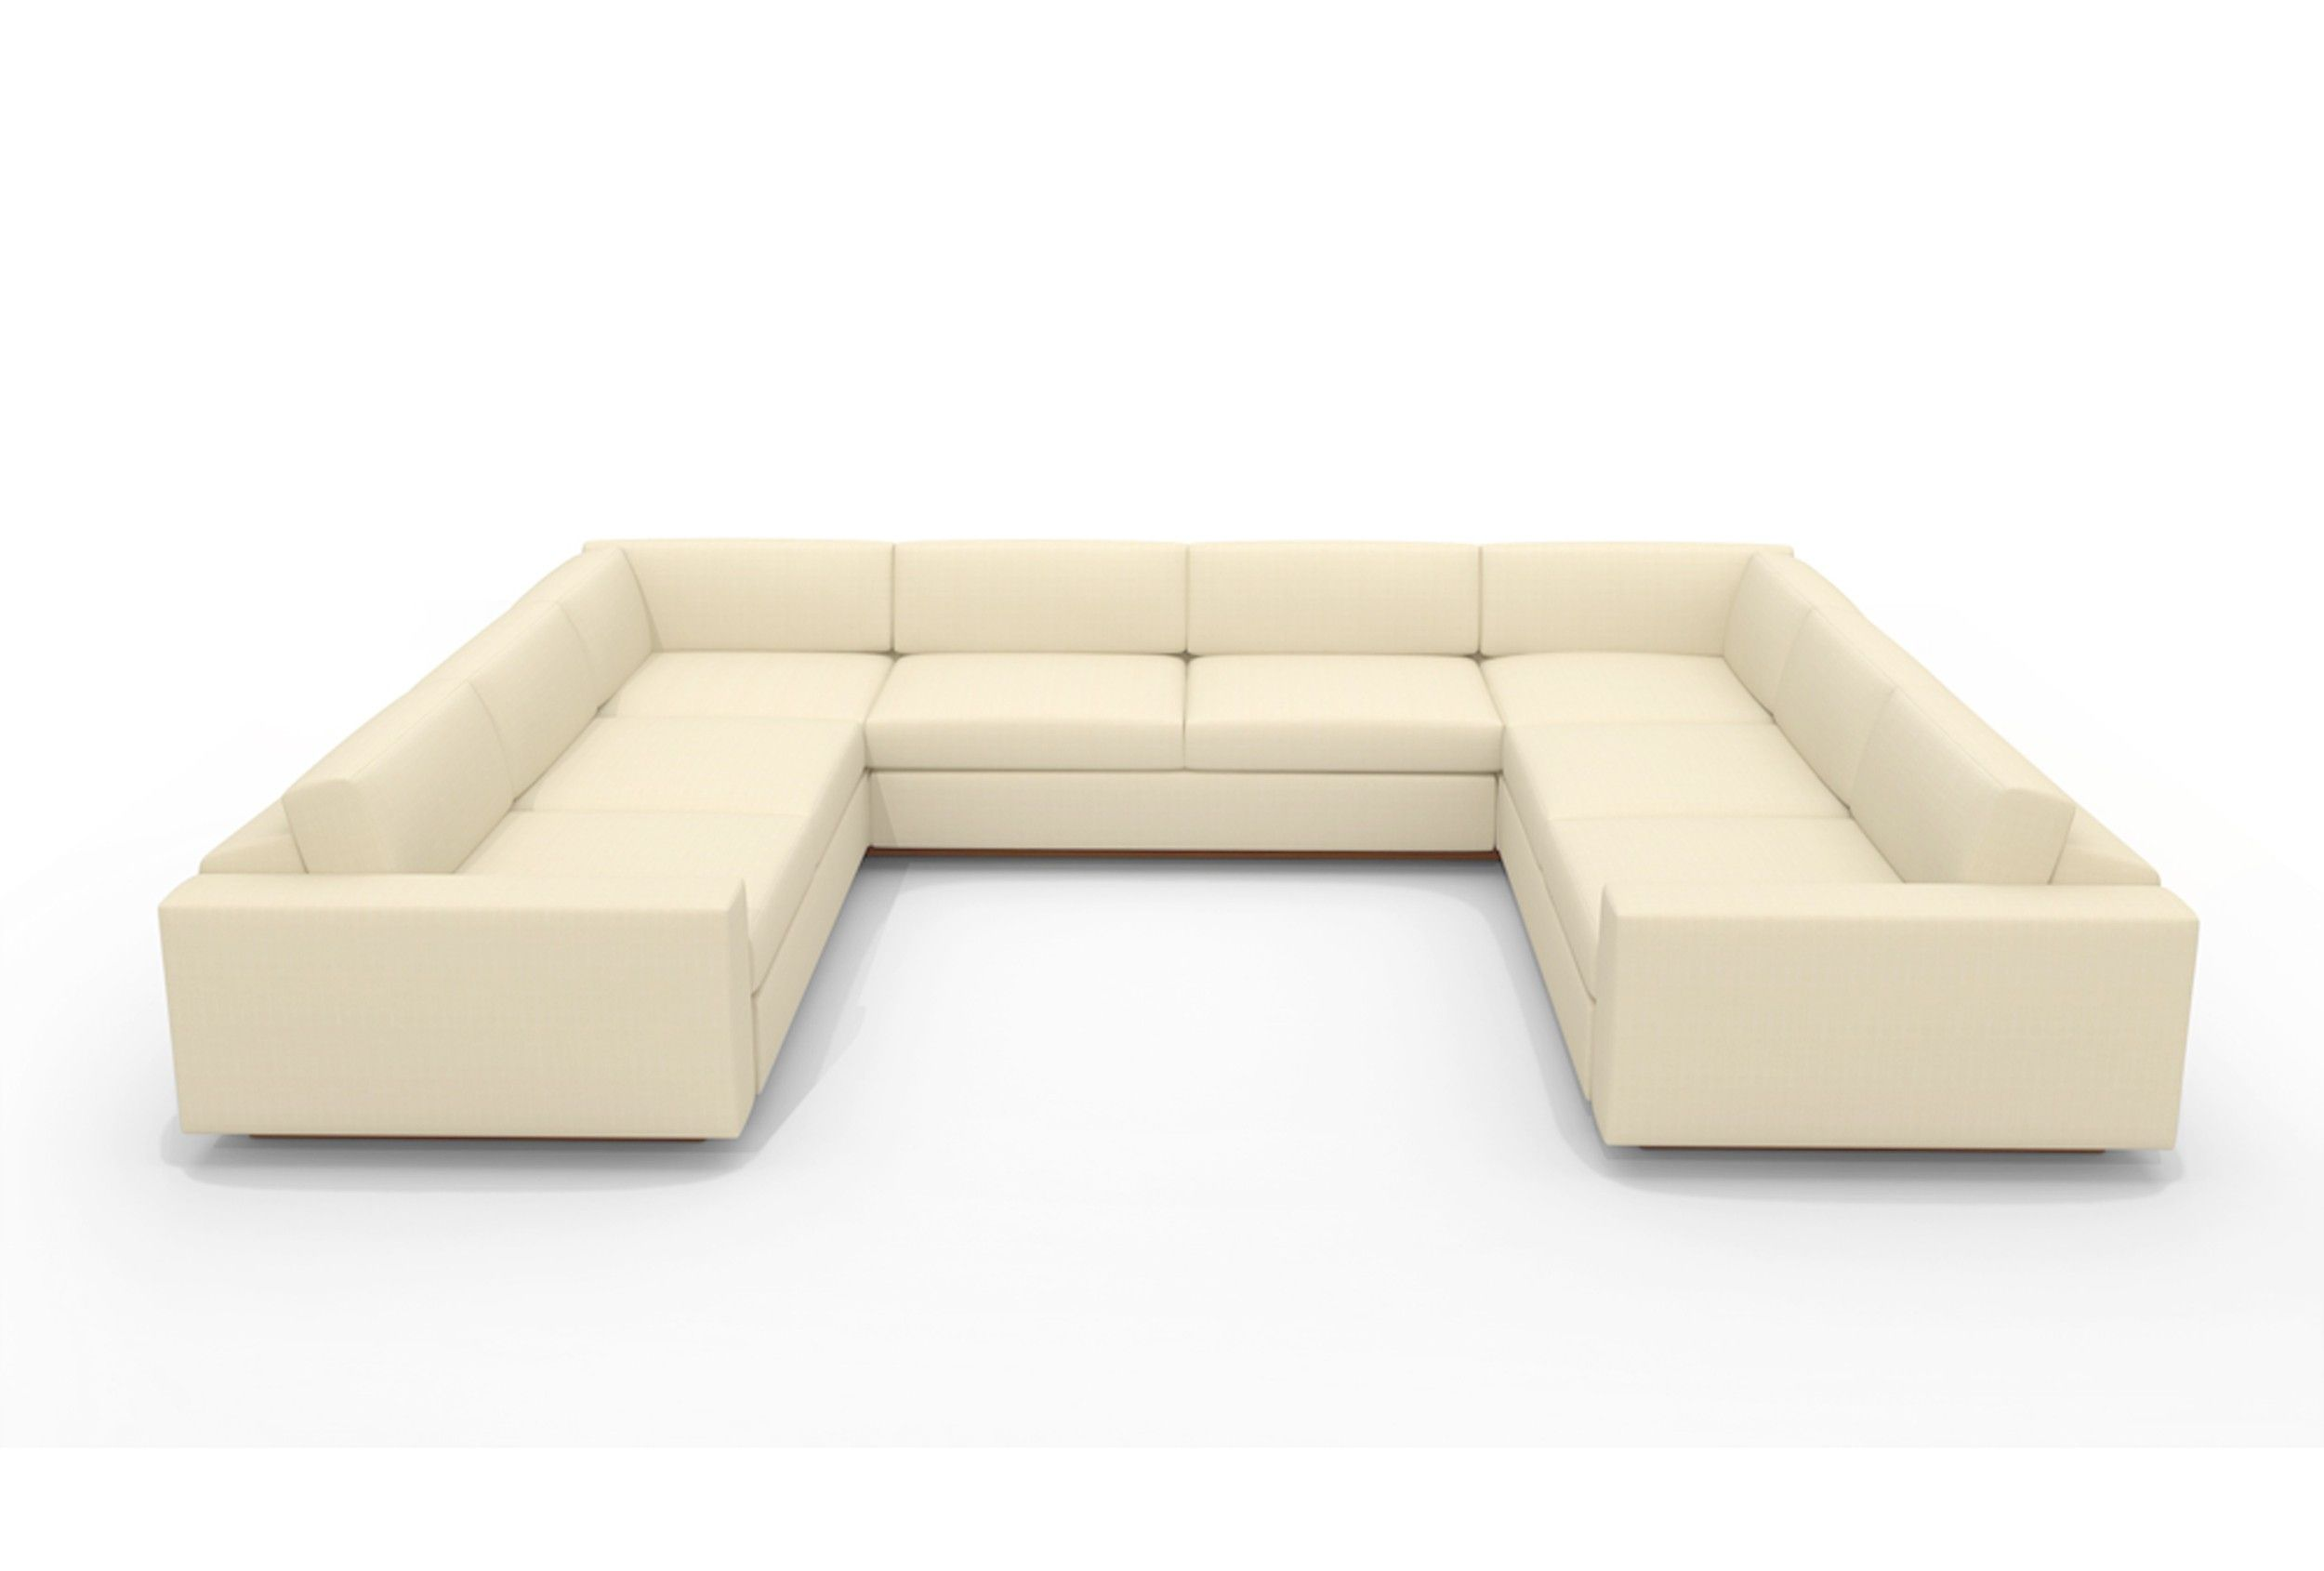 equipped be furniture com collection white sectional awesome living vuelosfera with room shaped u off of couch couches